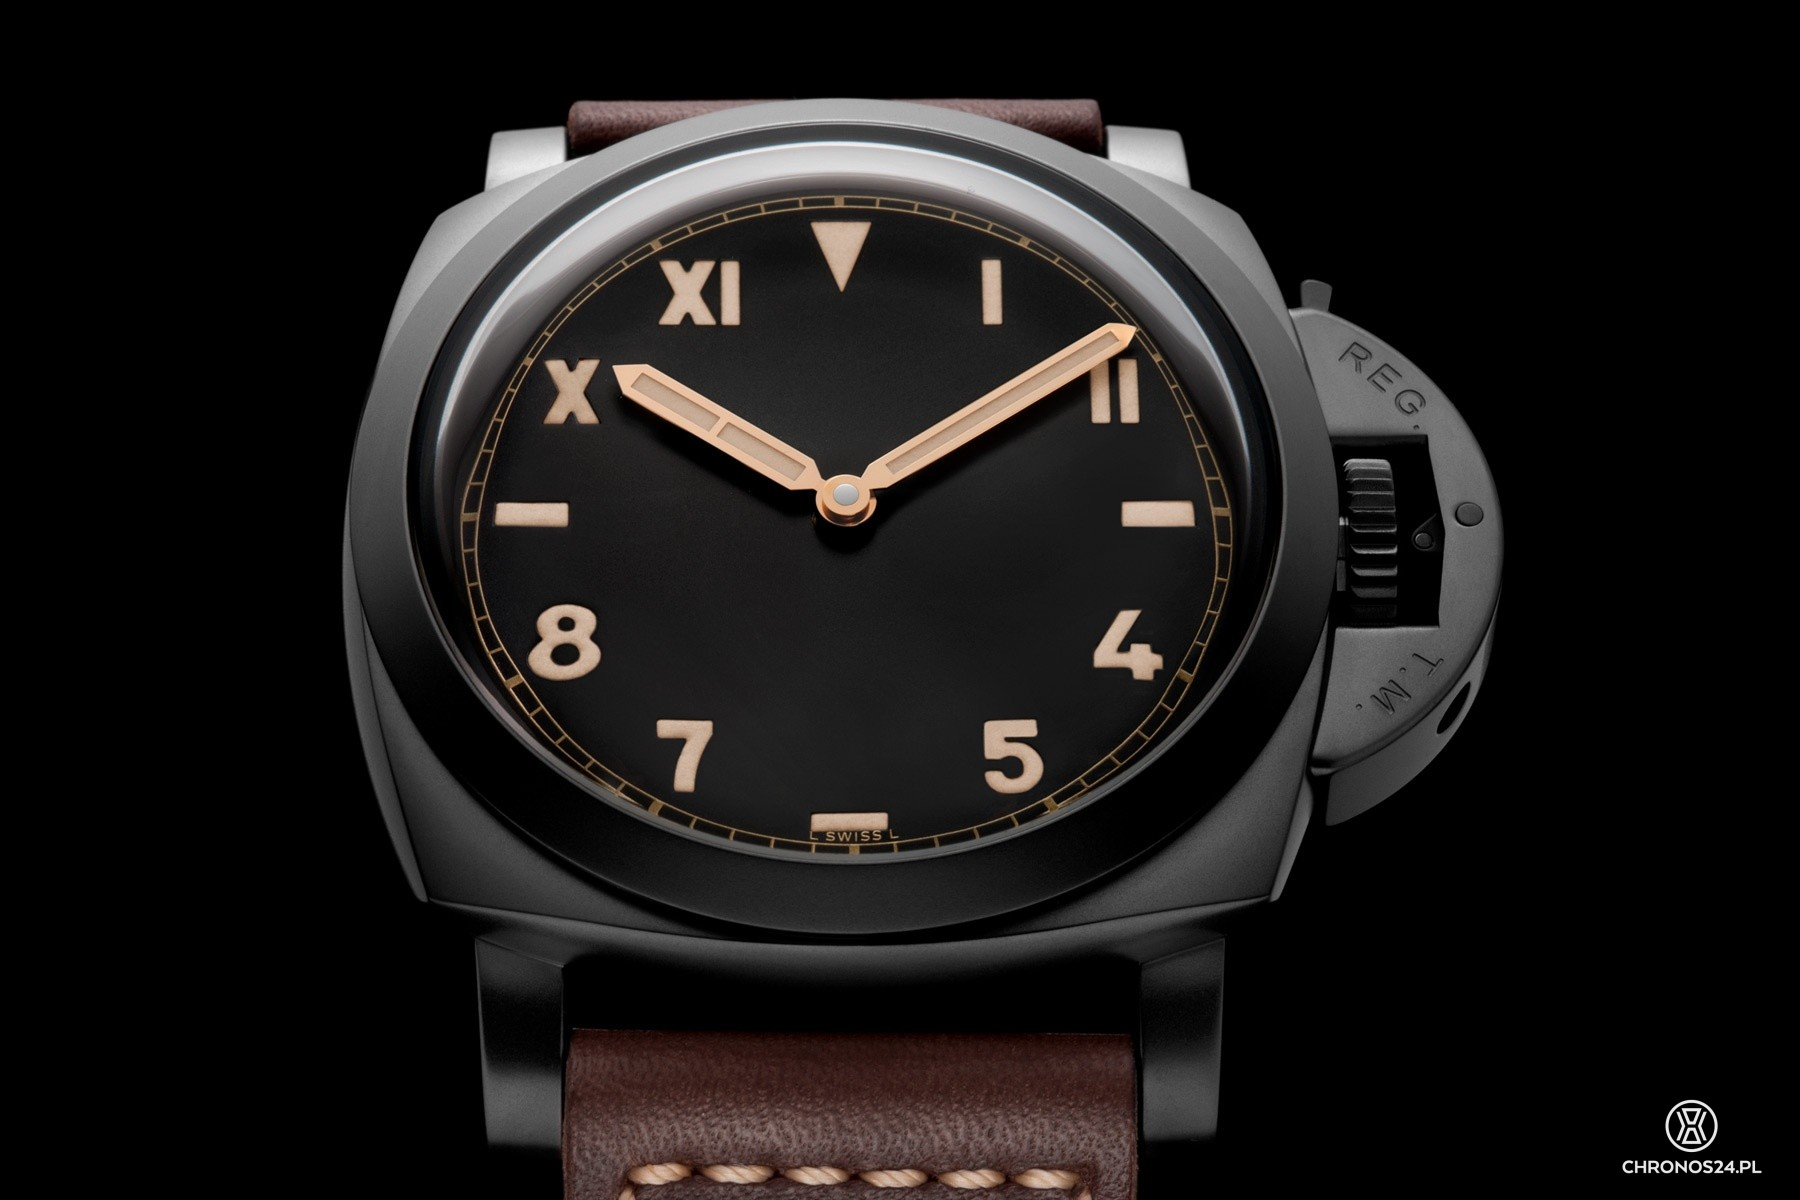 Panerai Luminor 1950 3 Days Titanio DLC PAM00629